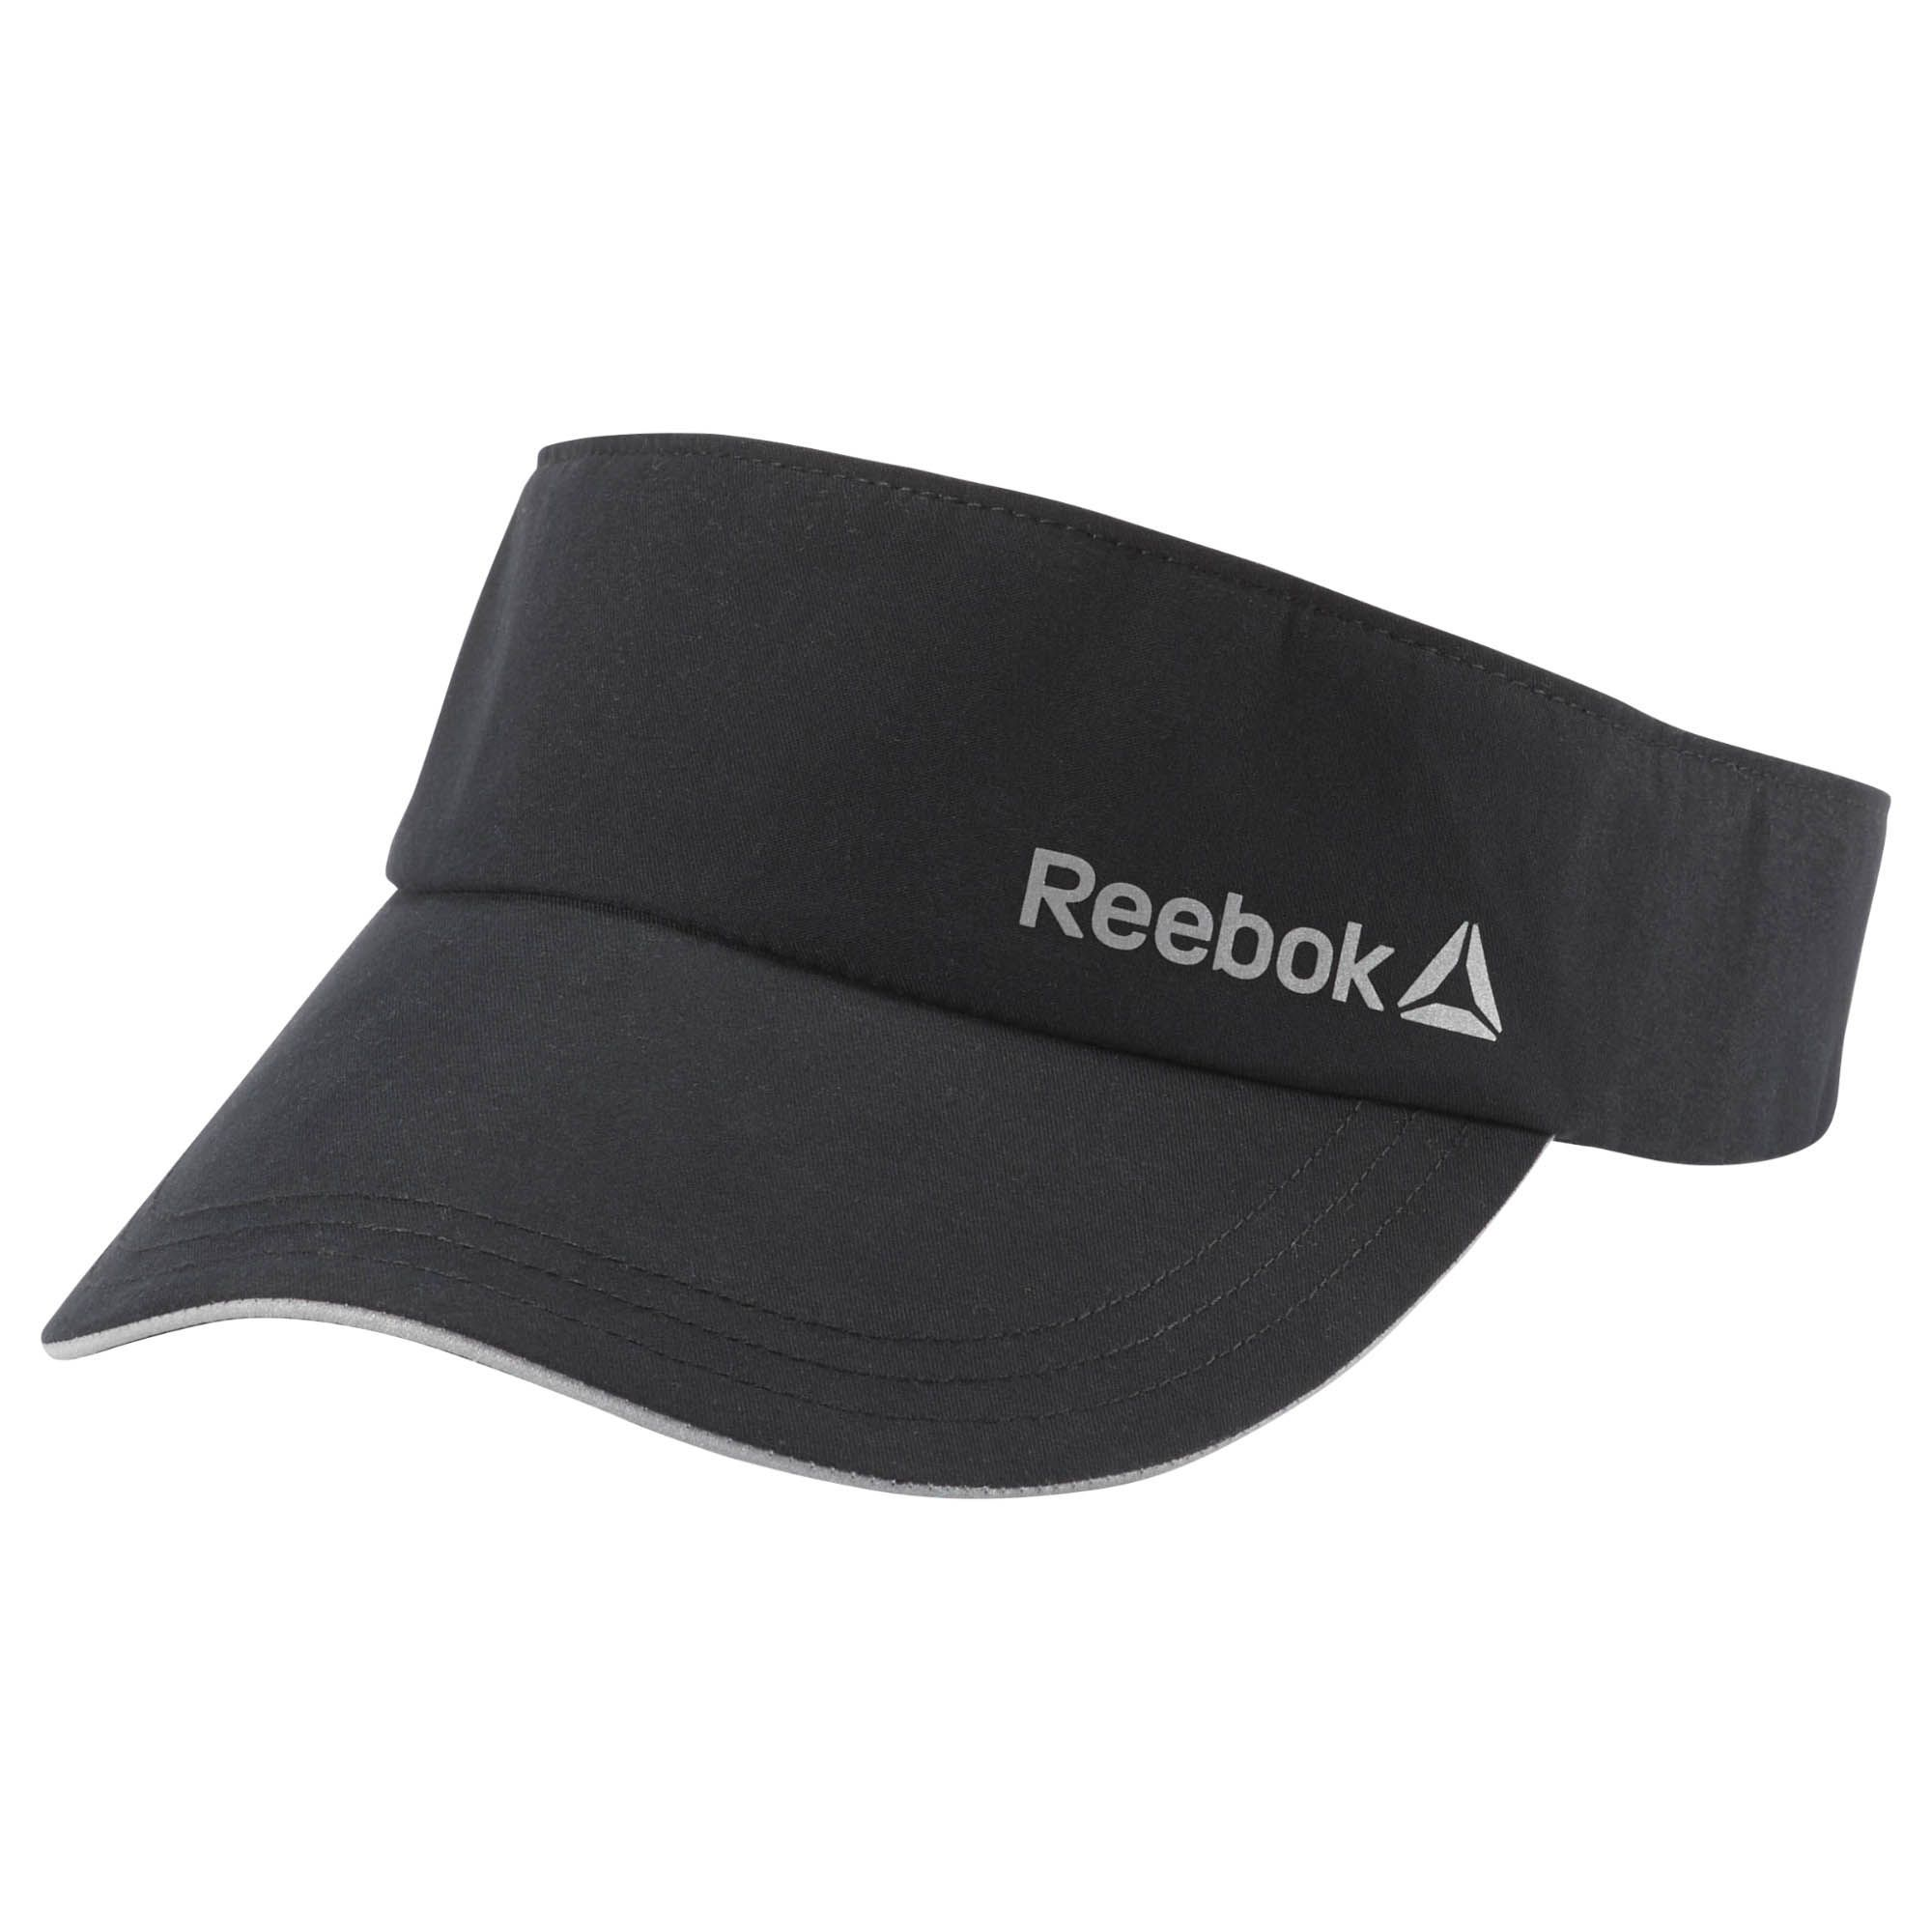 ac7045bb0ea61 Shop for Running Performance Visor - Black at reebok.com. See all the  styles and colors of Running Performance Visor - Black at the official  Reebok US ...